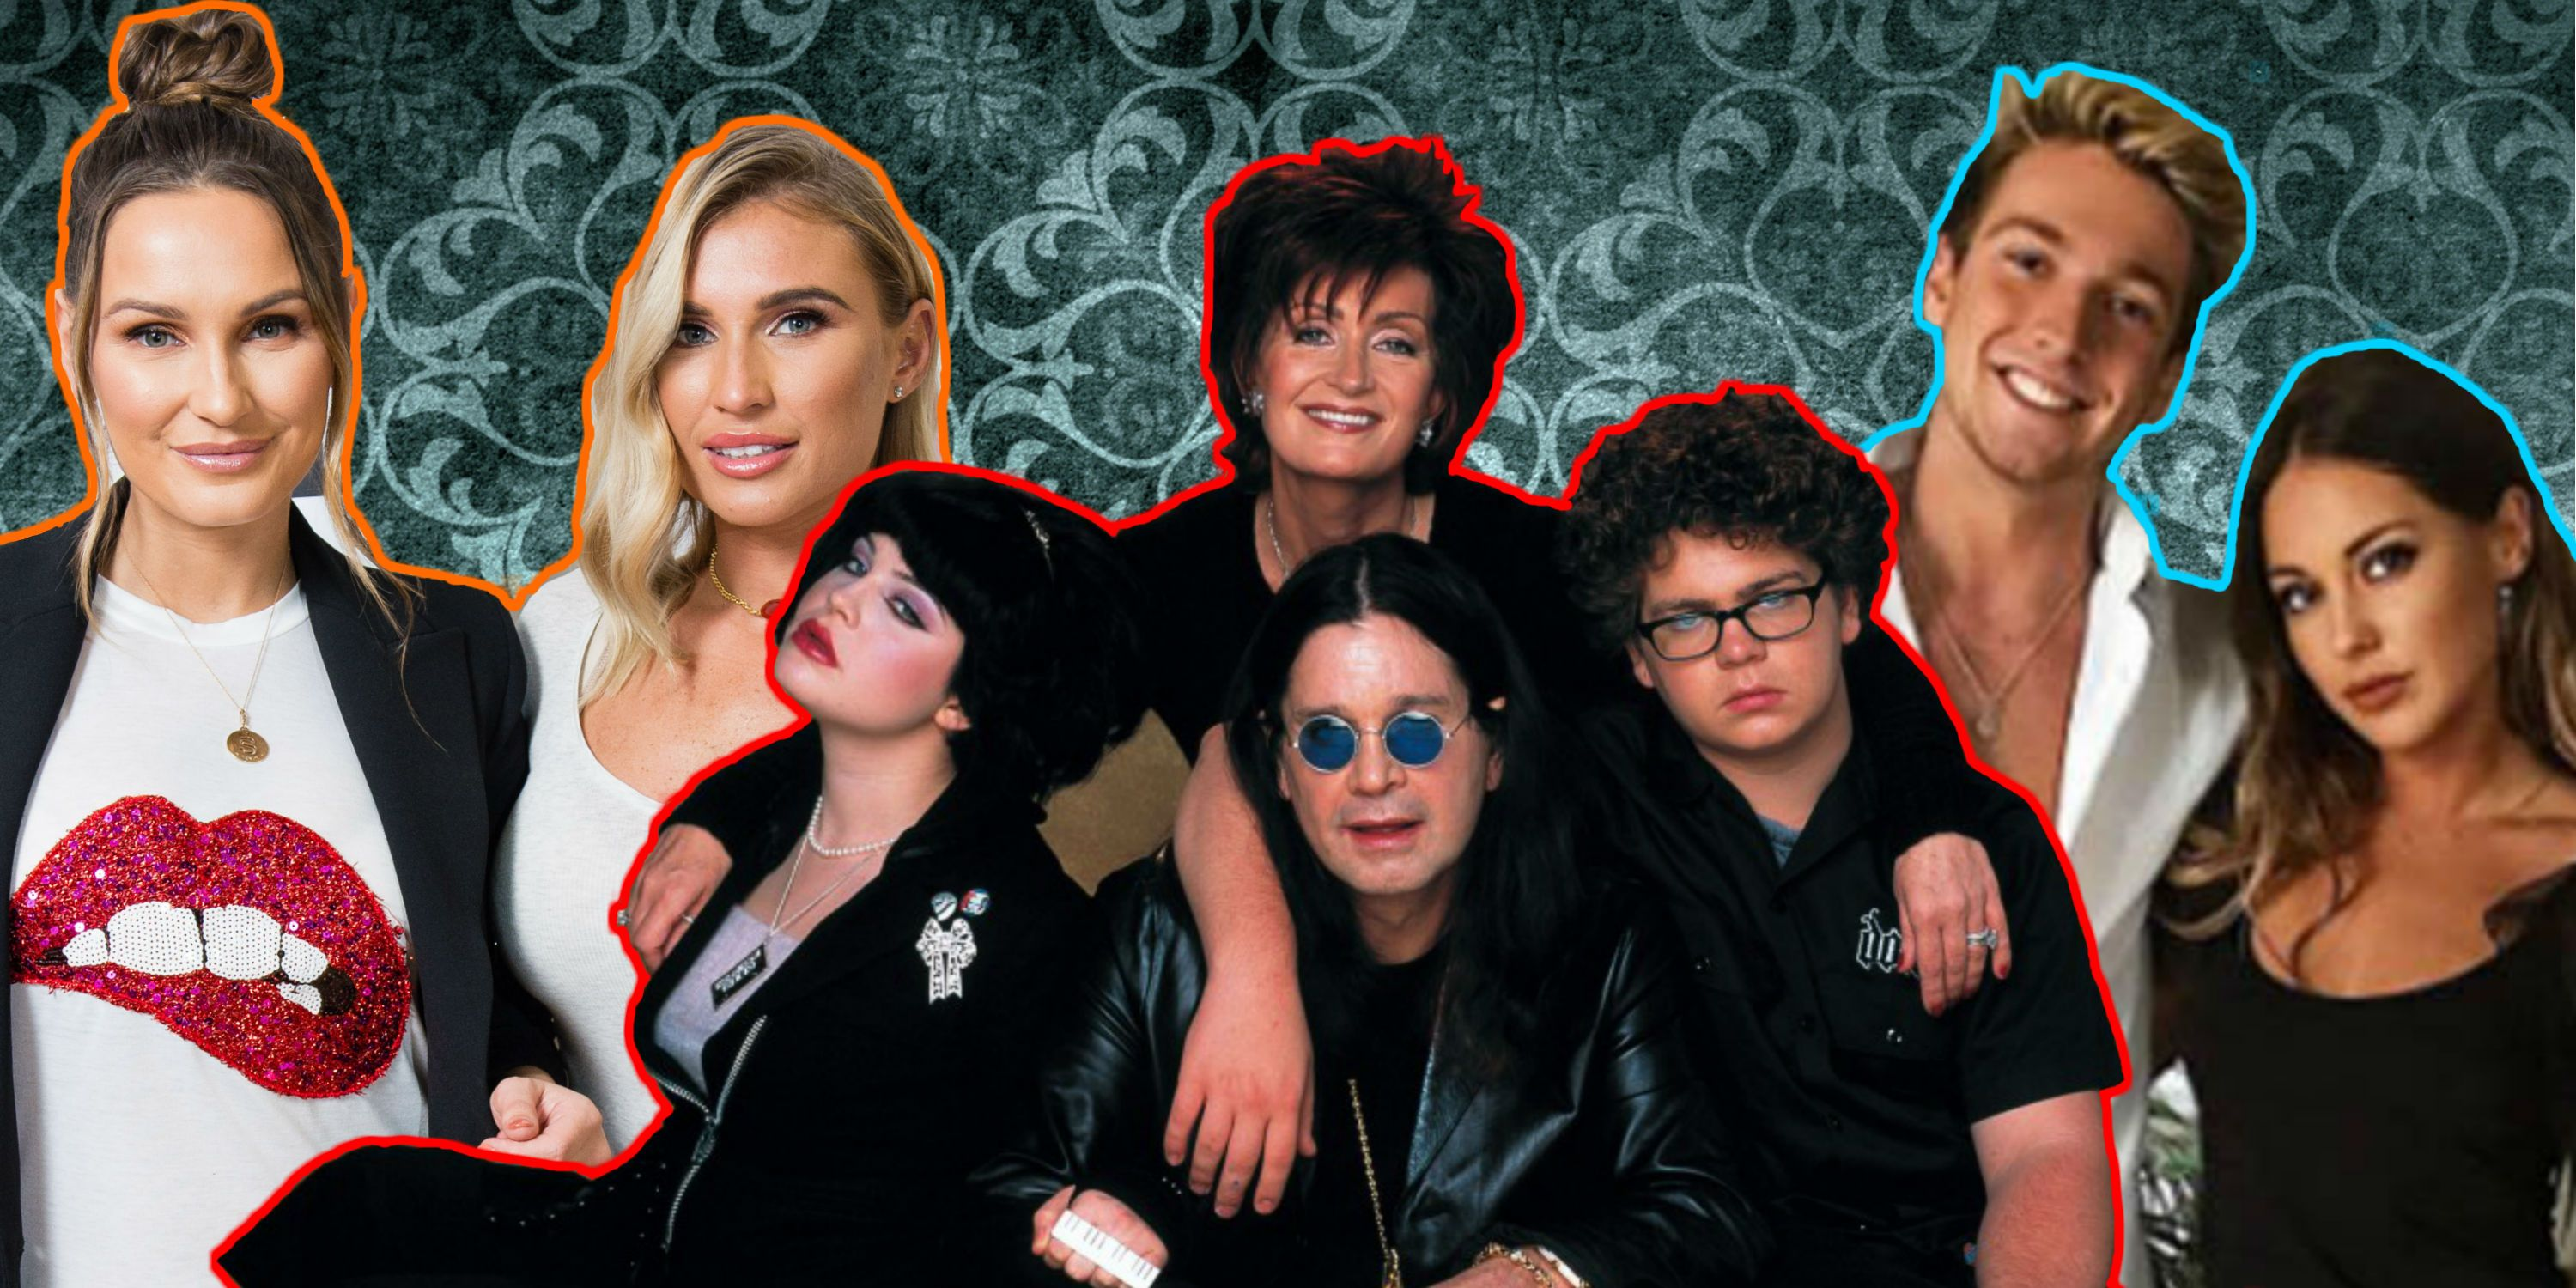 Reality TV family dynasties – Sam and Billie Faiers, The Osbournes, Sam and Louise Thompson